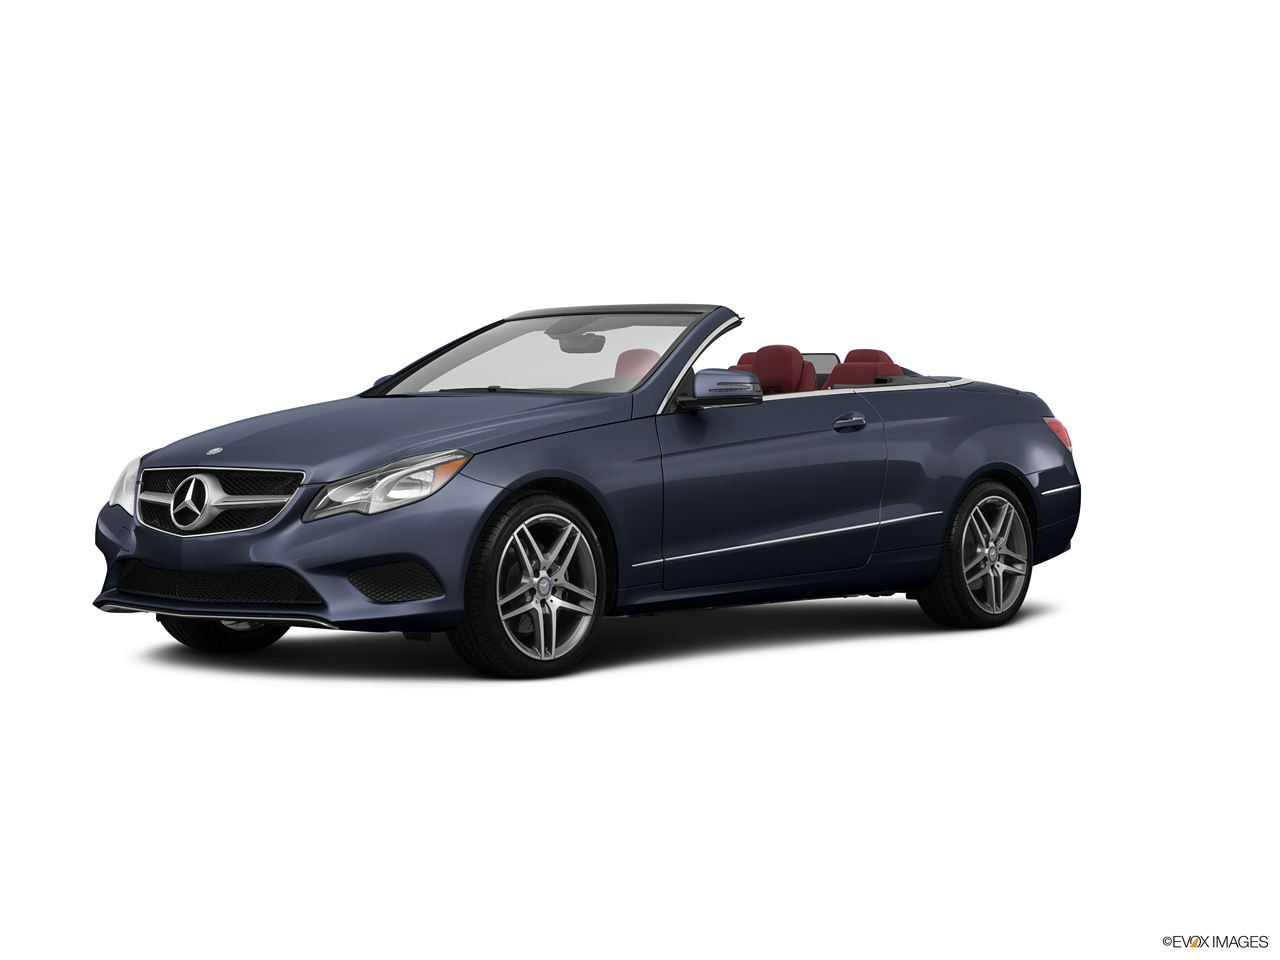 Car pictures list for mercedes benz e class cabriolet 2016 for Mercedes benz insurance